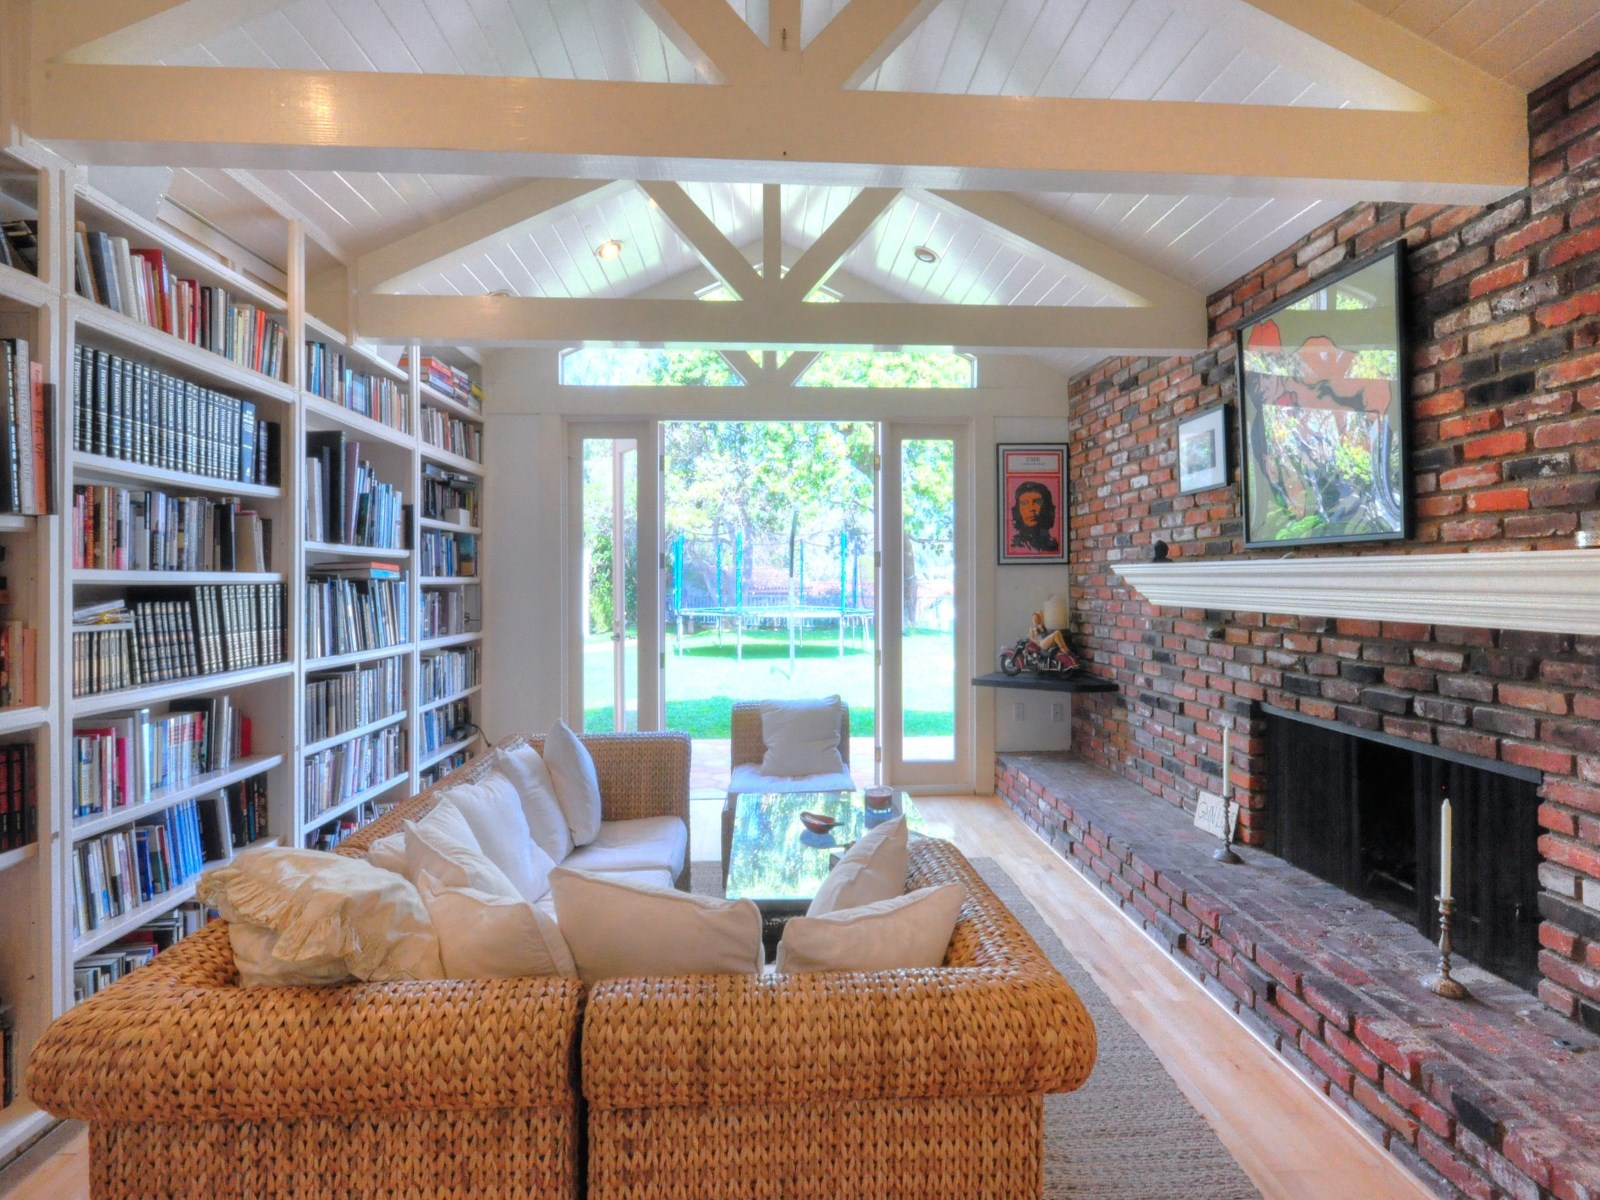 Beautiful home in Malibu CA for sale is Sean Penn's home - Sothebyshomes